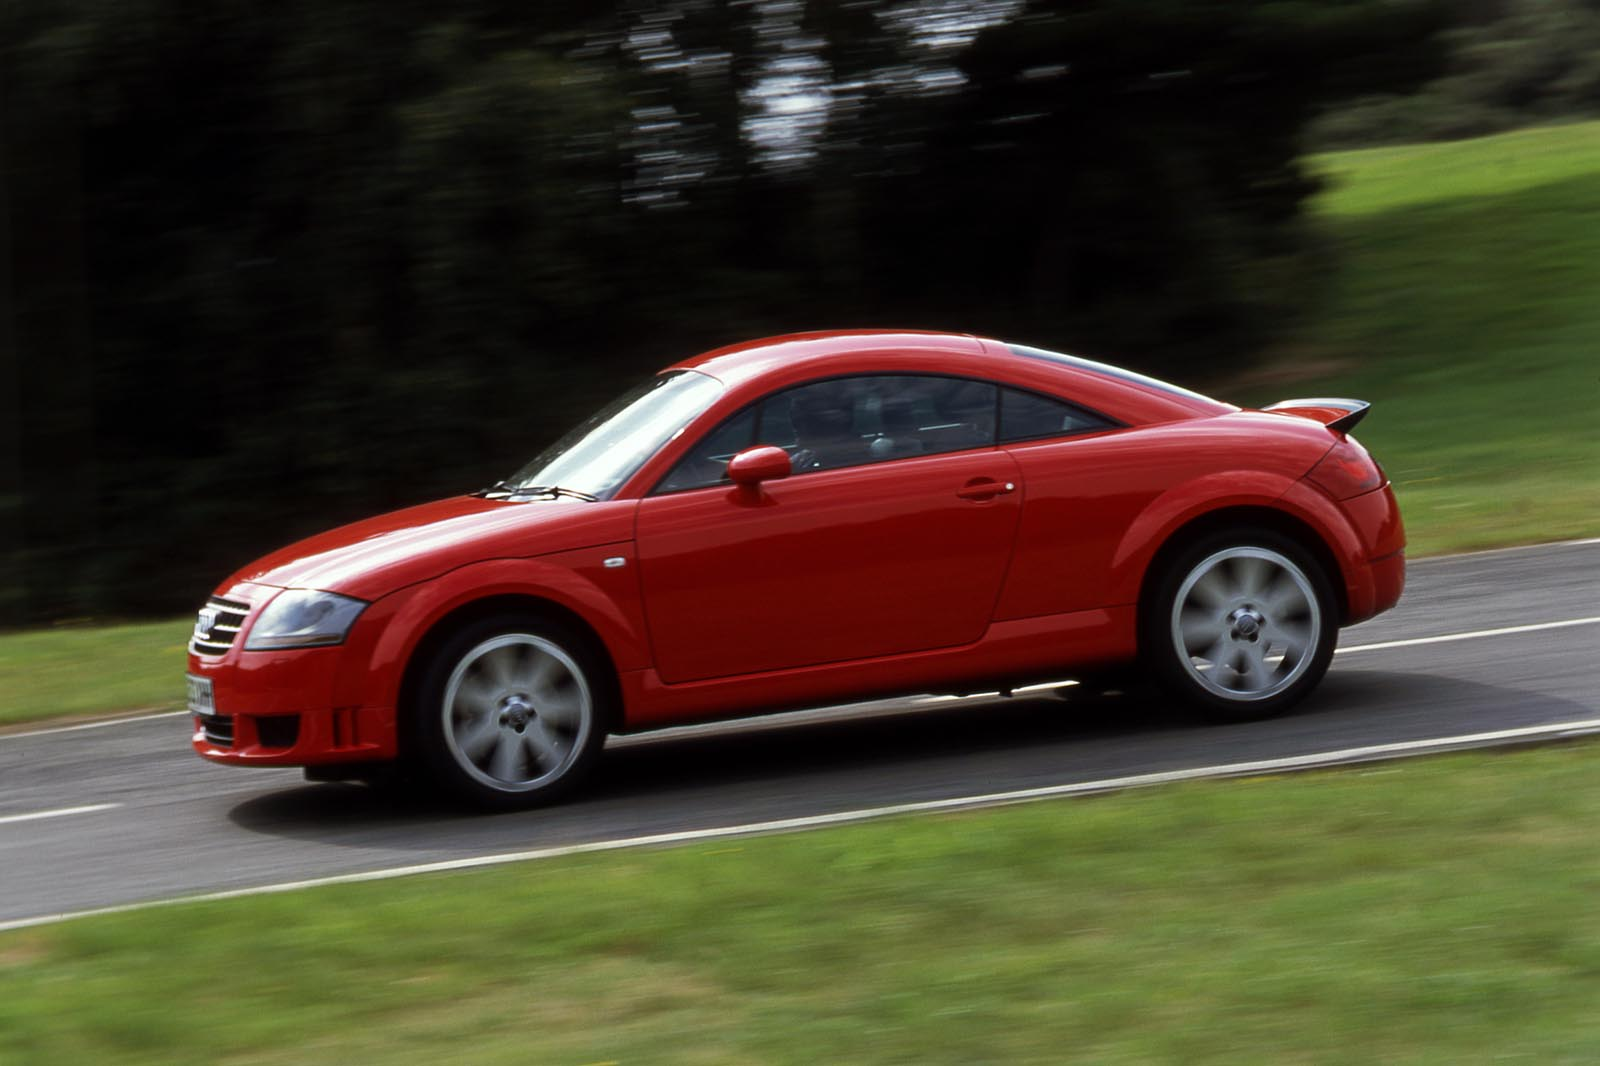 audi tt used car buying guide autocar. Black Bedroom Furniture Sets. Home Design Ideas